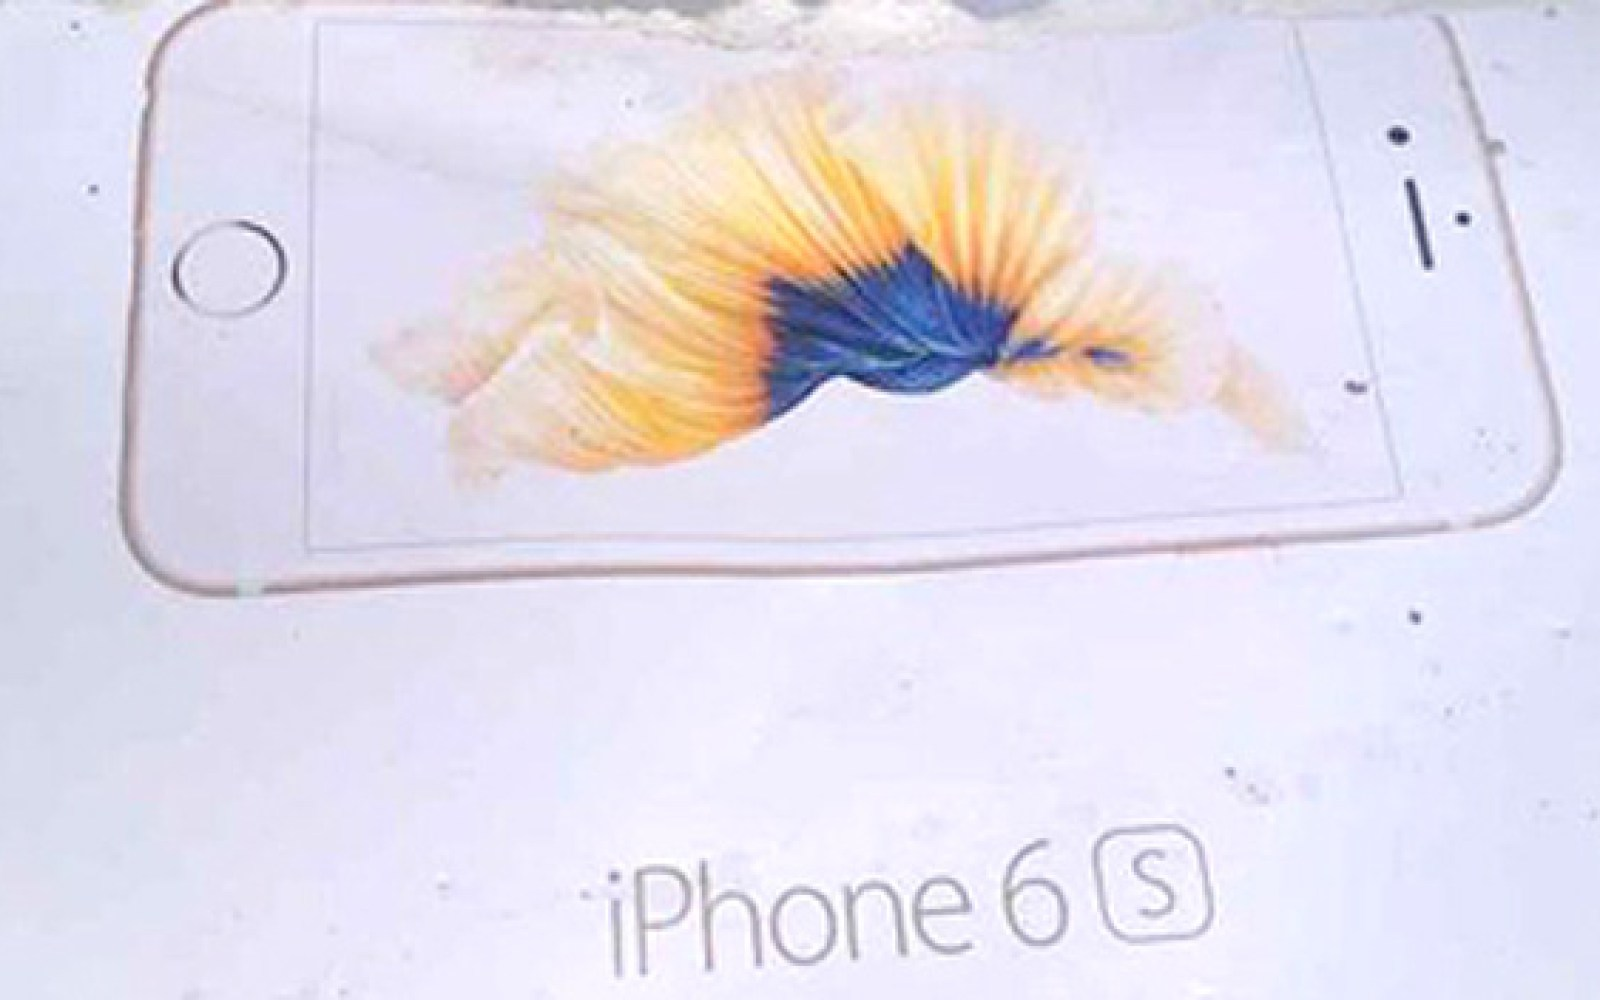 Leaked iPhone 6s box again hints Motion backgrounds coming to new iPhones